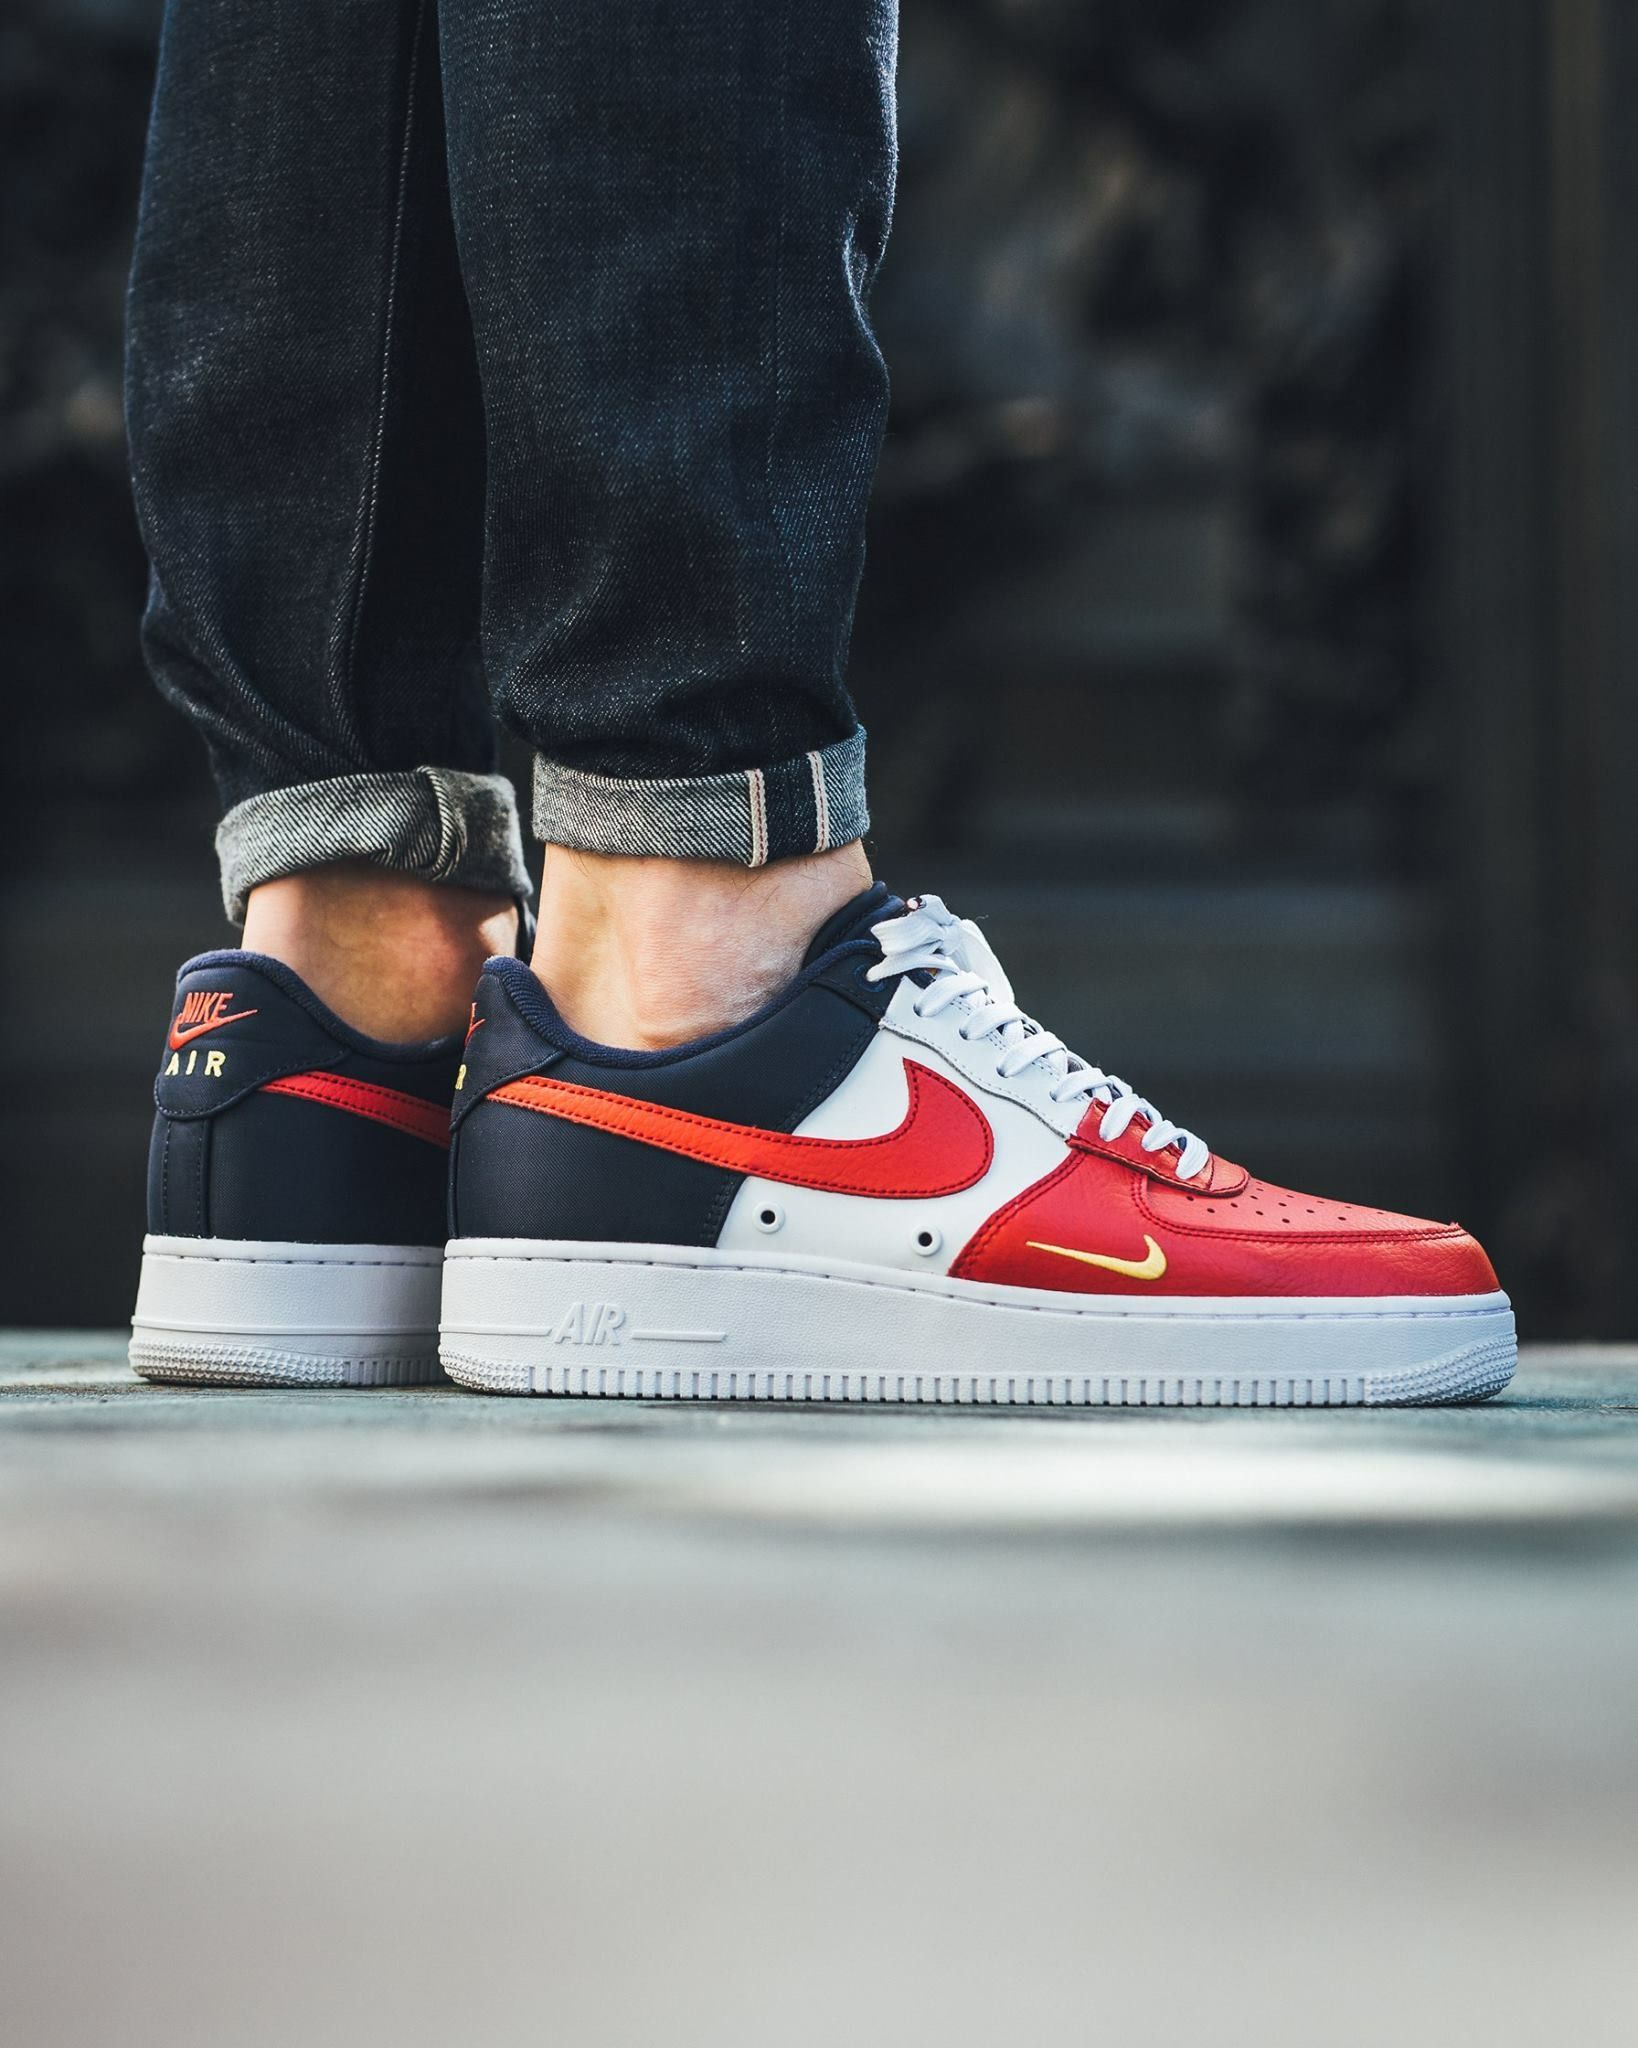 online retailer 0bea3 1395c Nike Air Force 1 LV07